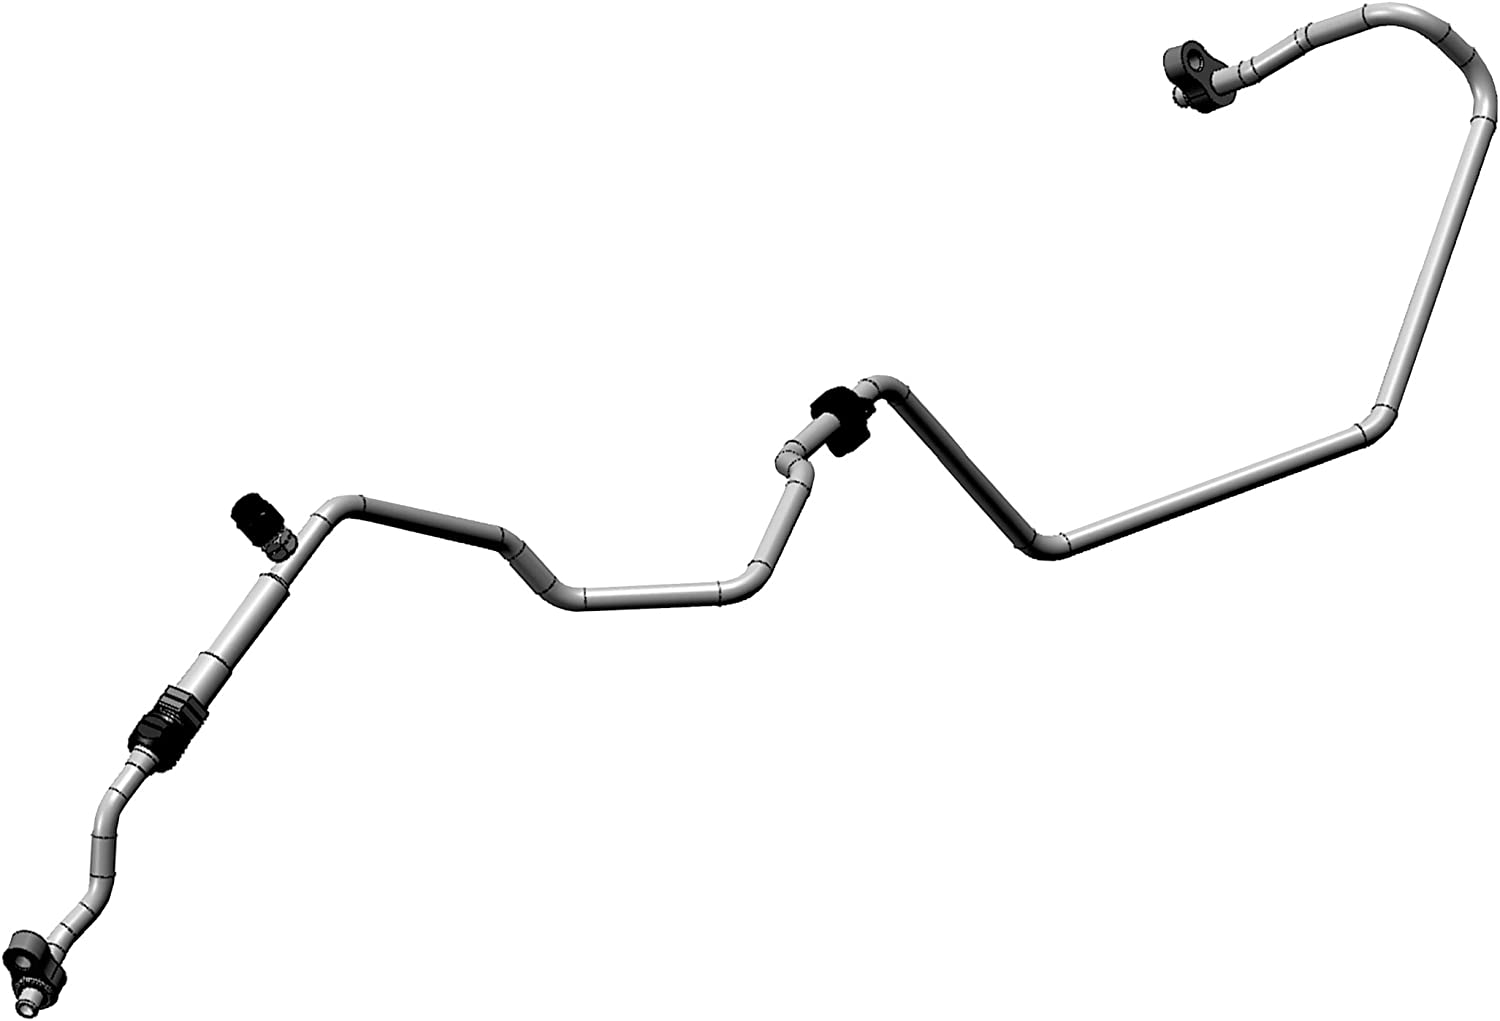 ACDelco 15-33777 GM Original Conditioning Refriger SALENEW very popular! Air 70% OFF Outlet Equipment